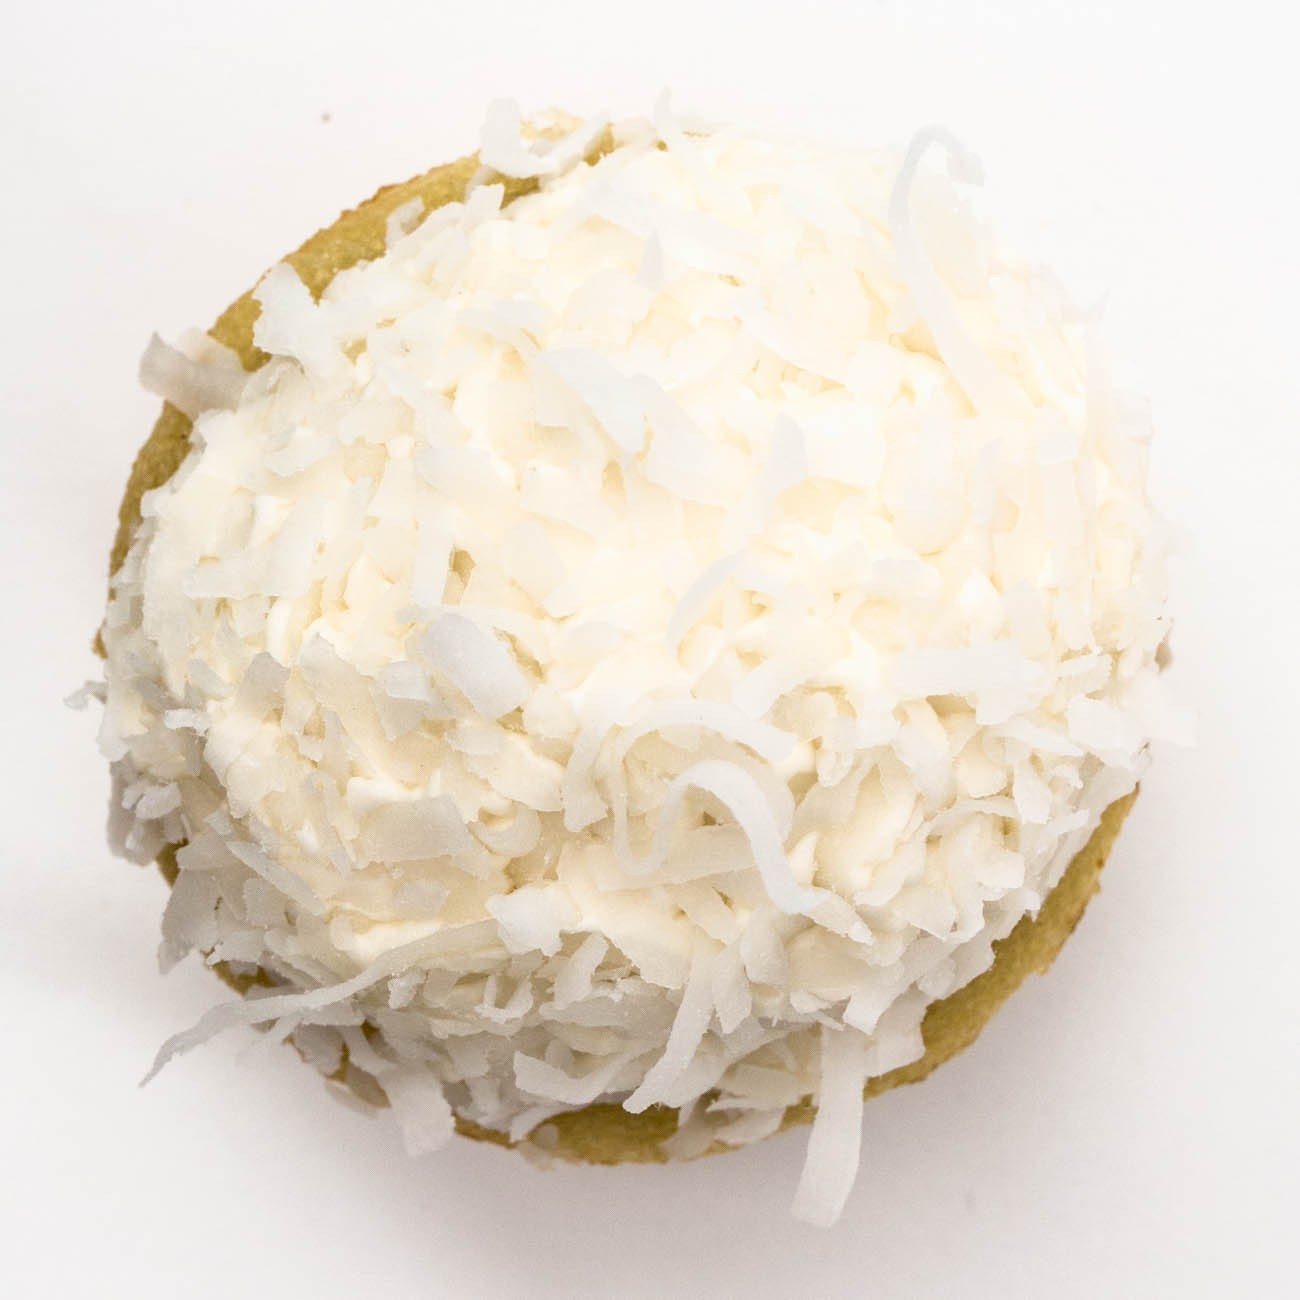 A coconut cupcake from Abby Girl Sweets / Image: Catherine Viox // Published: 1.4.20